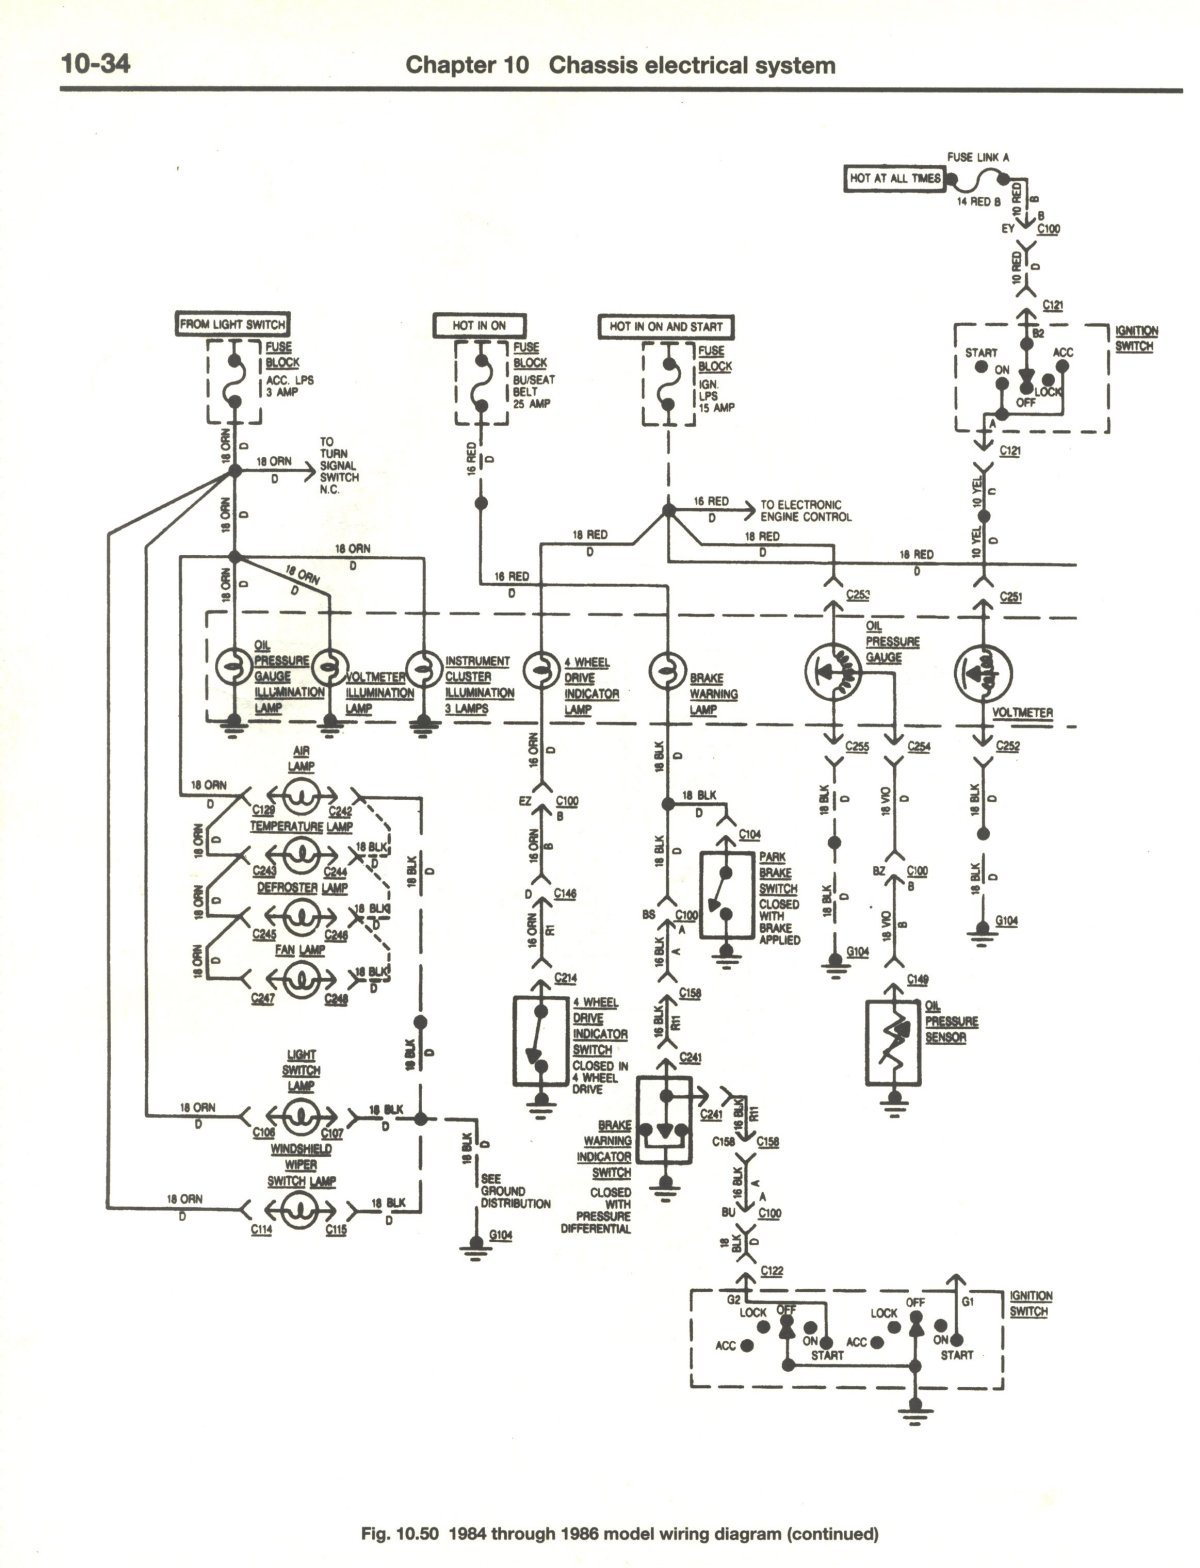 Jeep Cj5 Wiring Diagram Wiring Diagram And Schematics